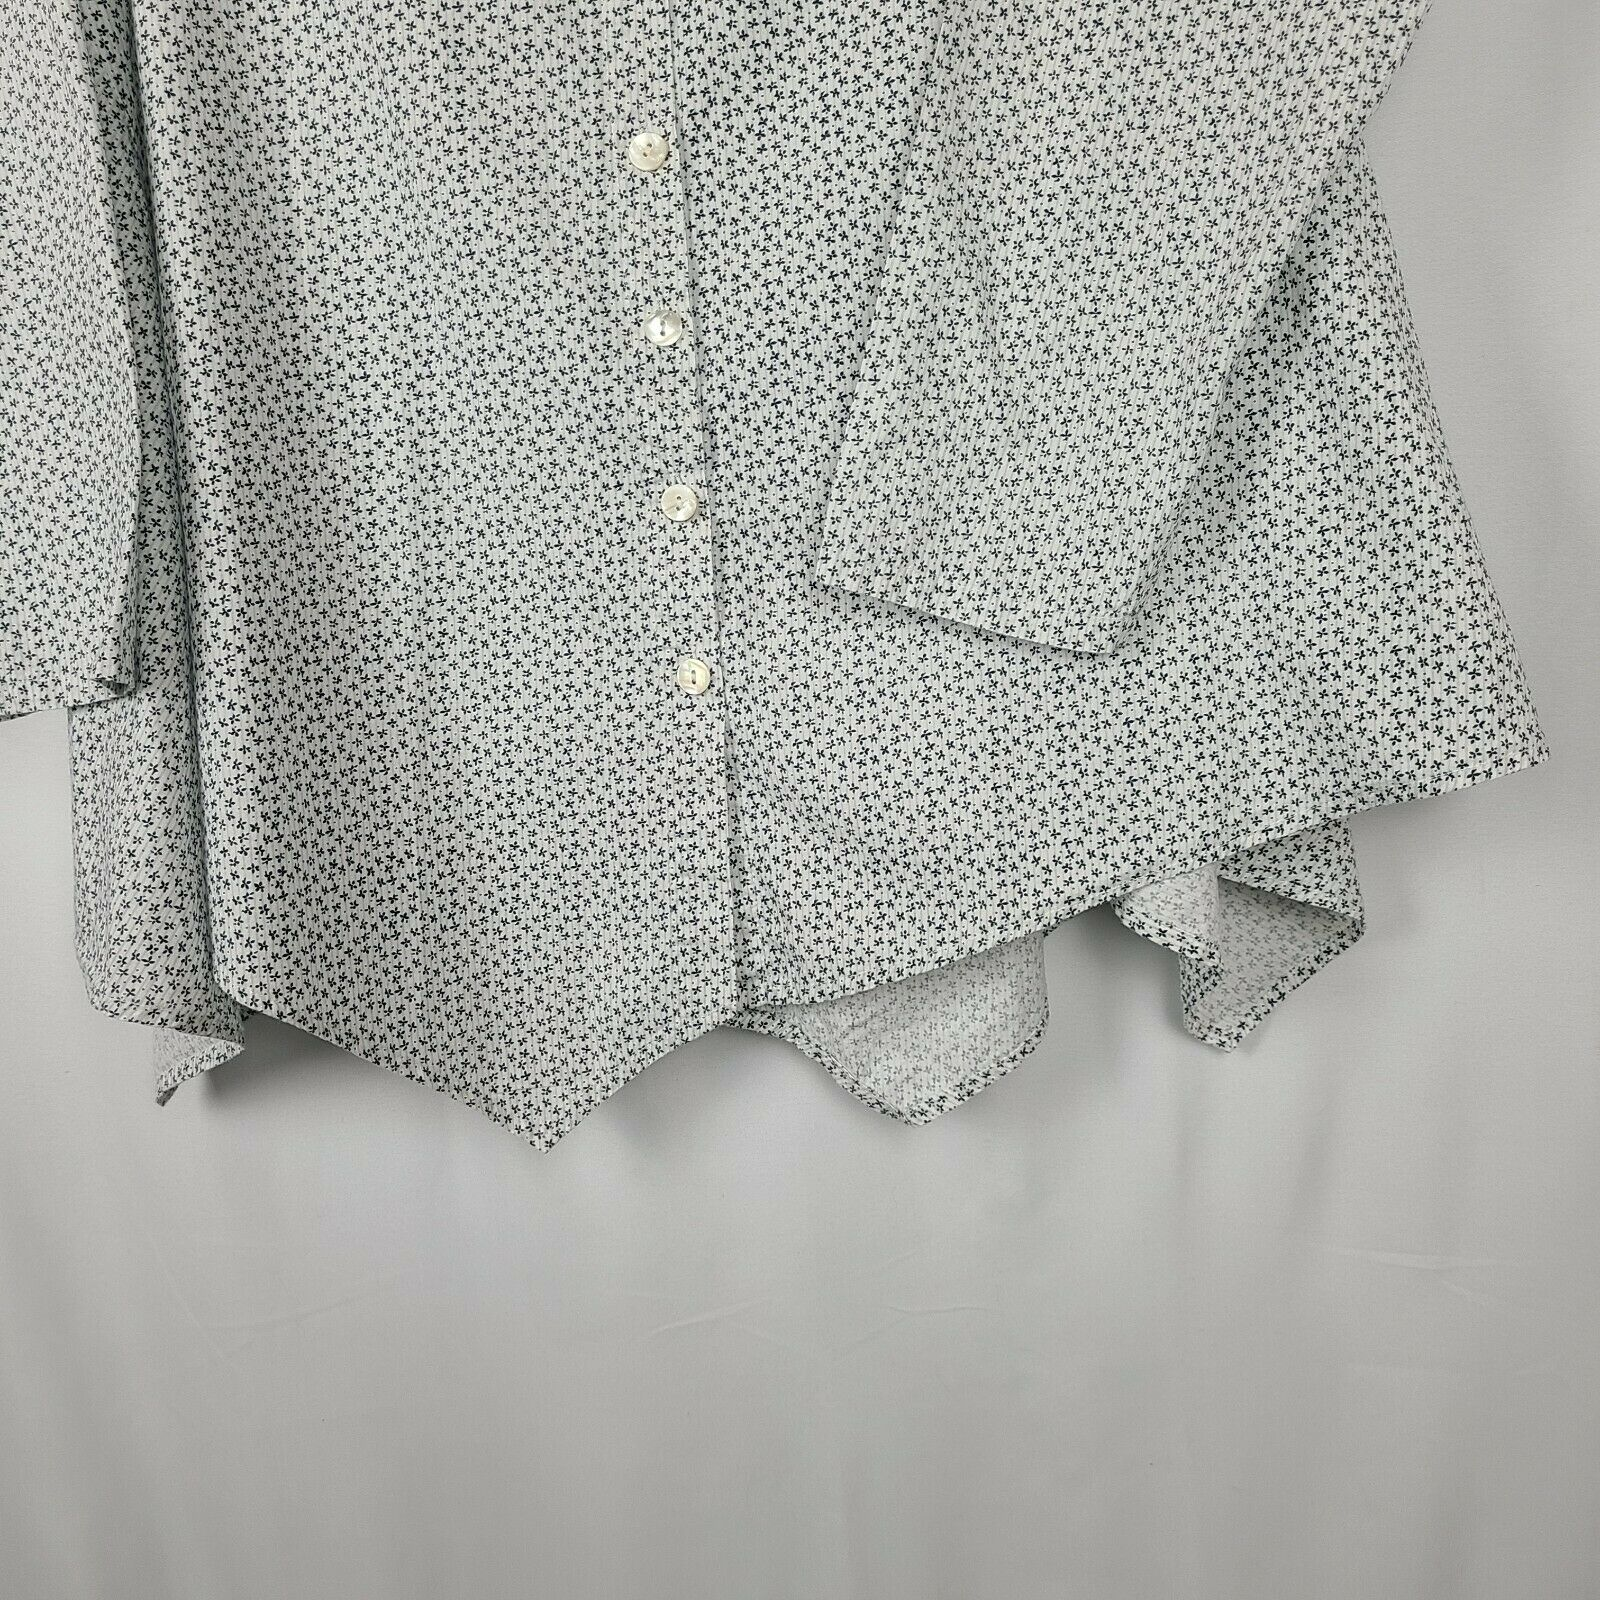 Tulip Women's Button Down Blouse Size Small Overs… - image 4